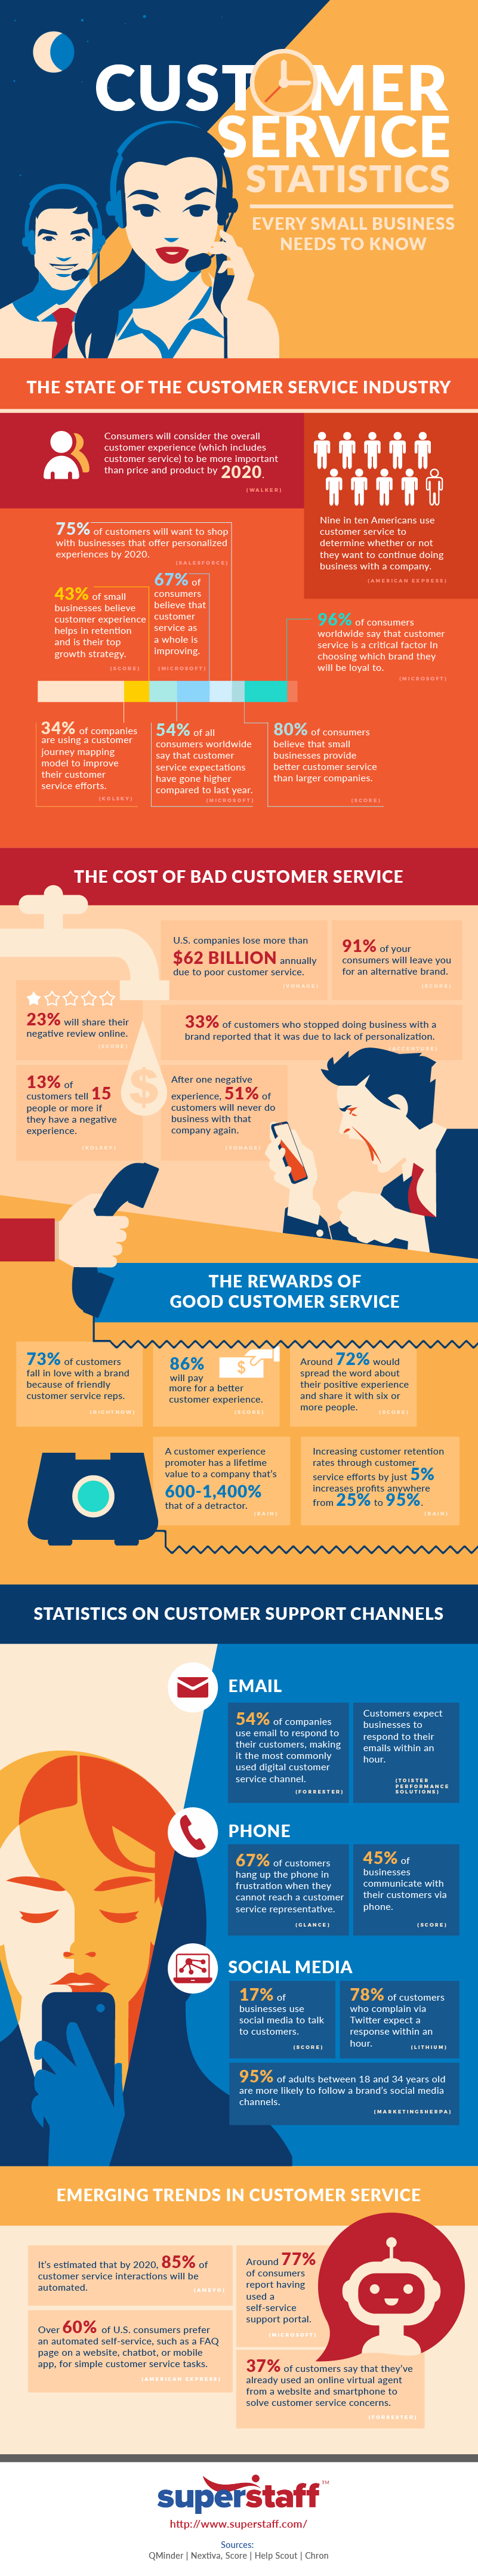 Customer Service Statistics Every Small Business Needs to Know